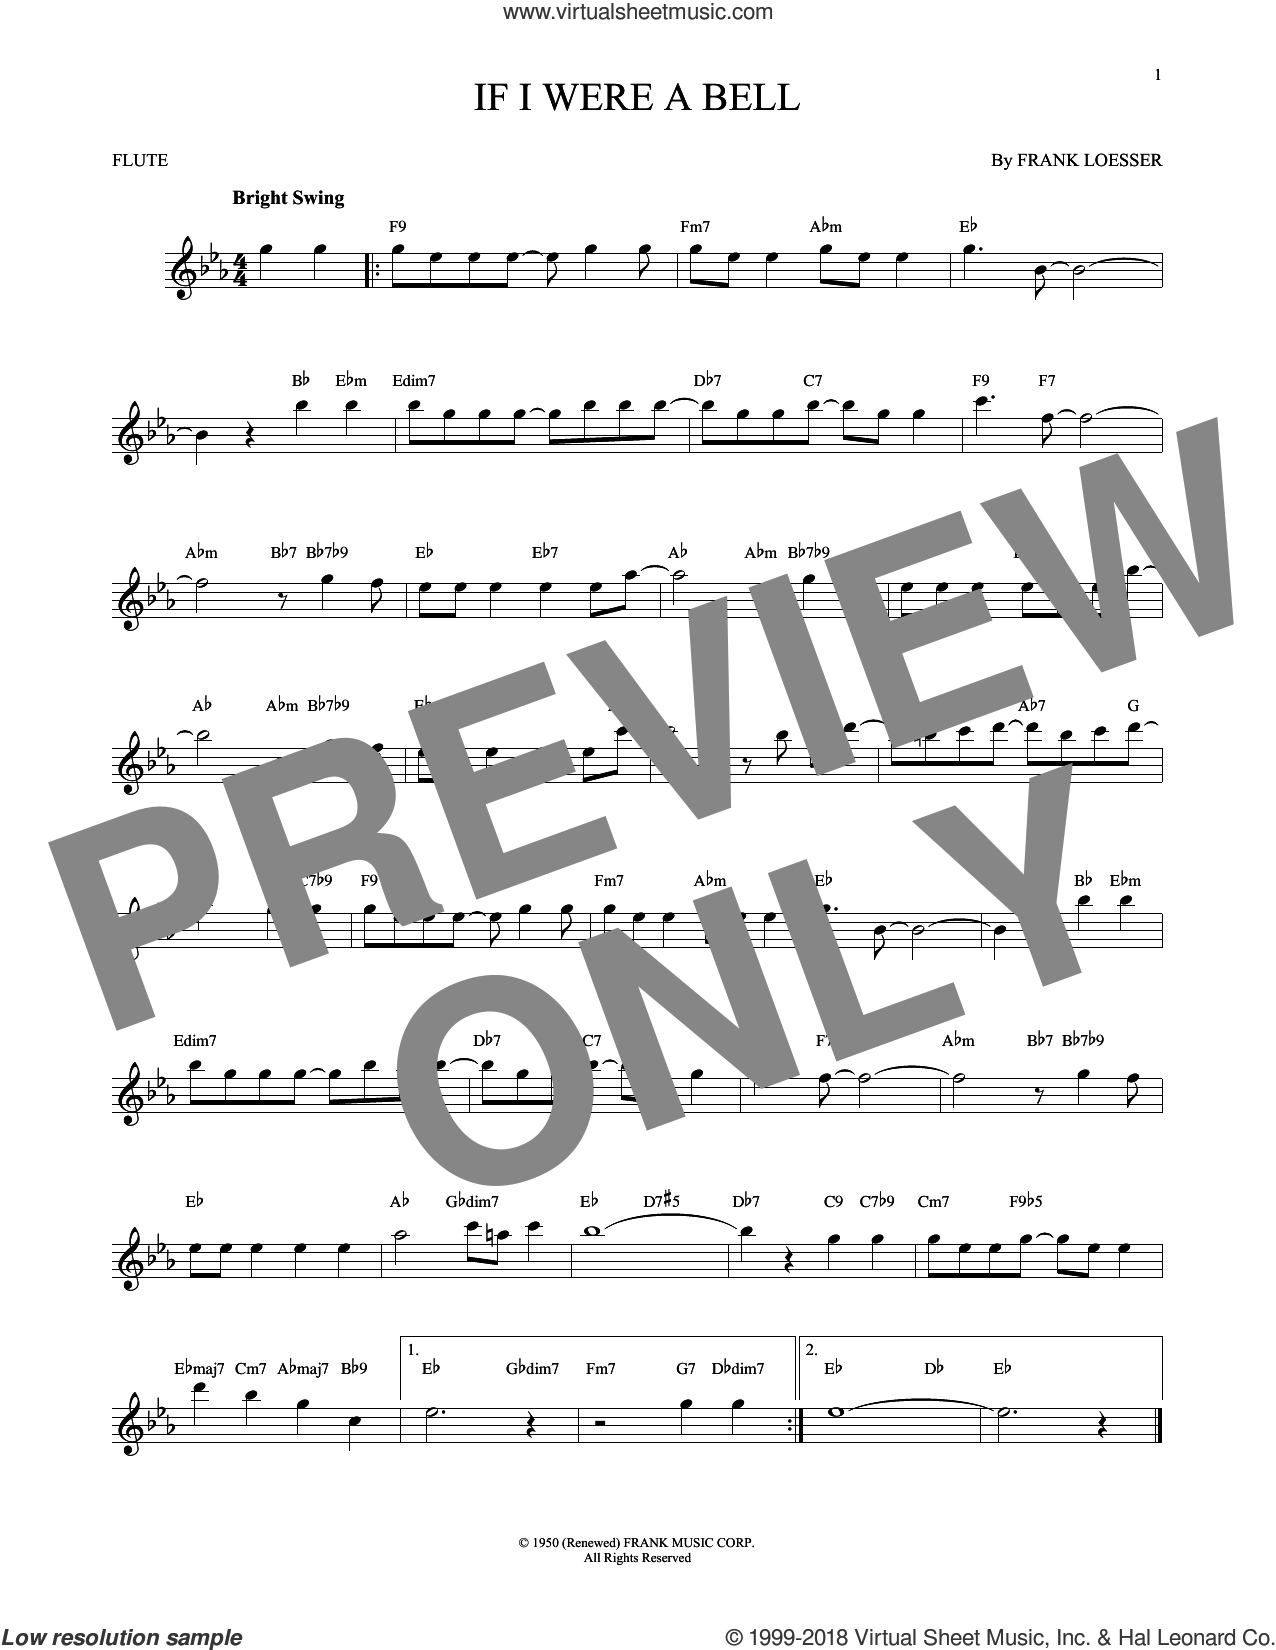 If I Were A Bell sheet music for flute solo by Frank Loesser, intermediate skill level